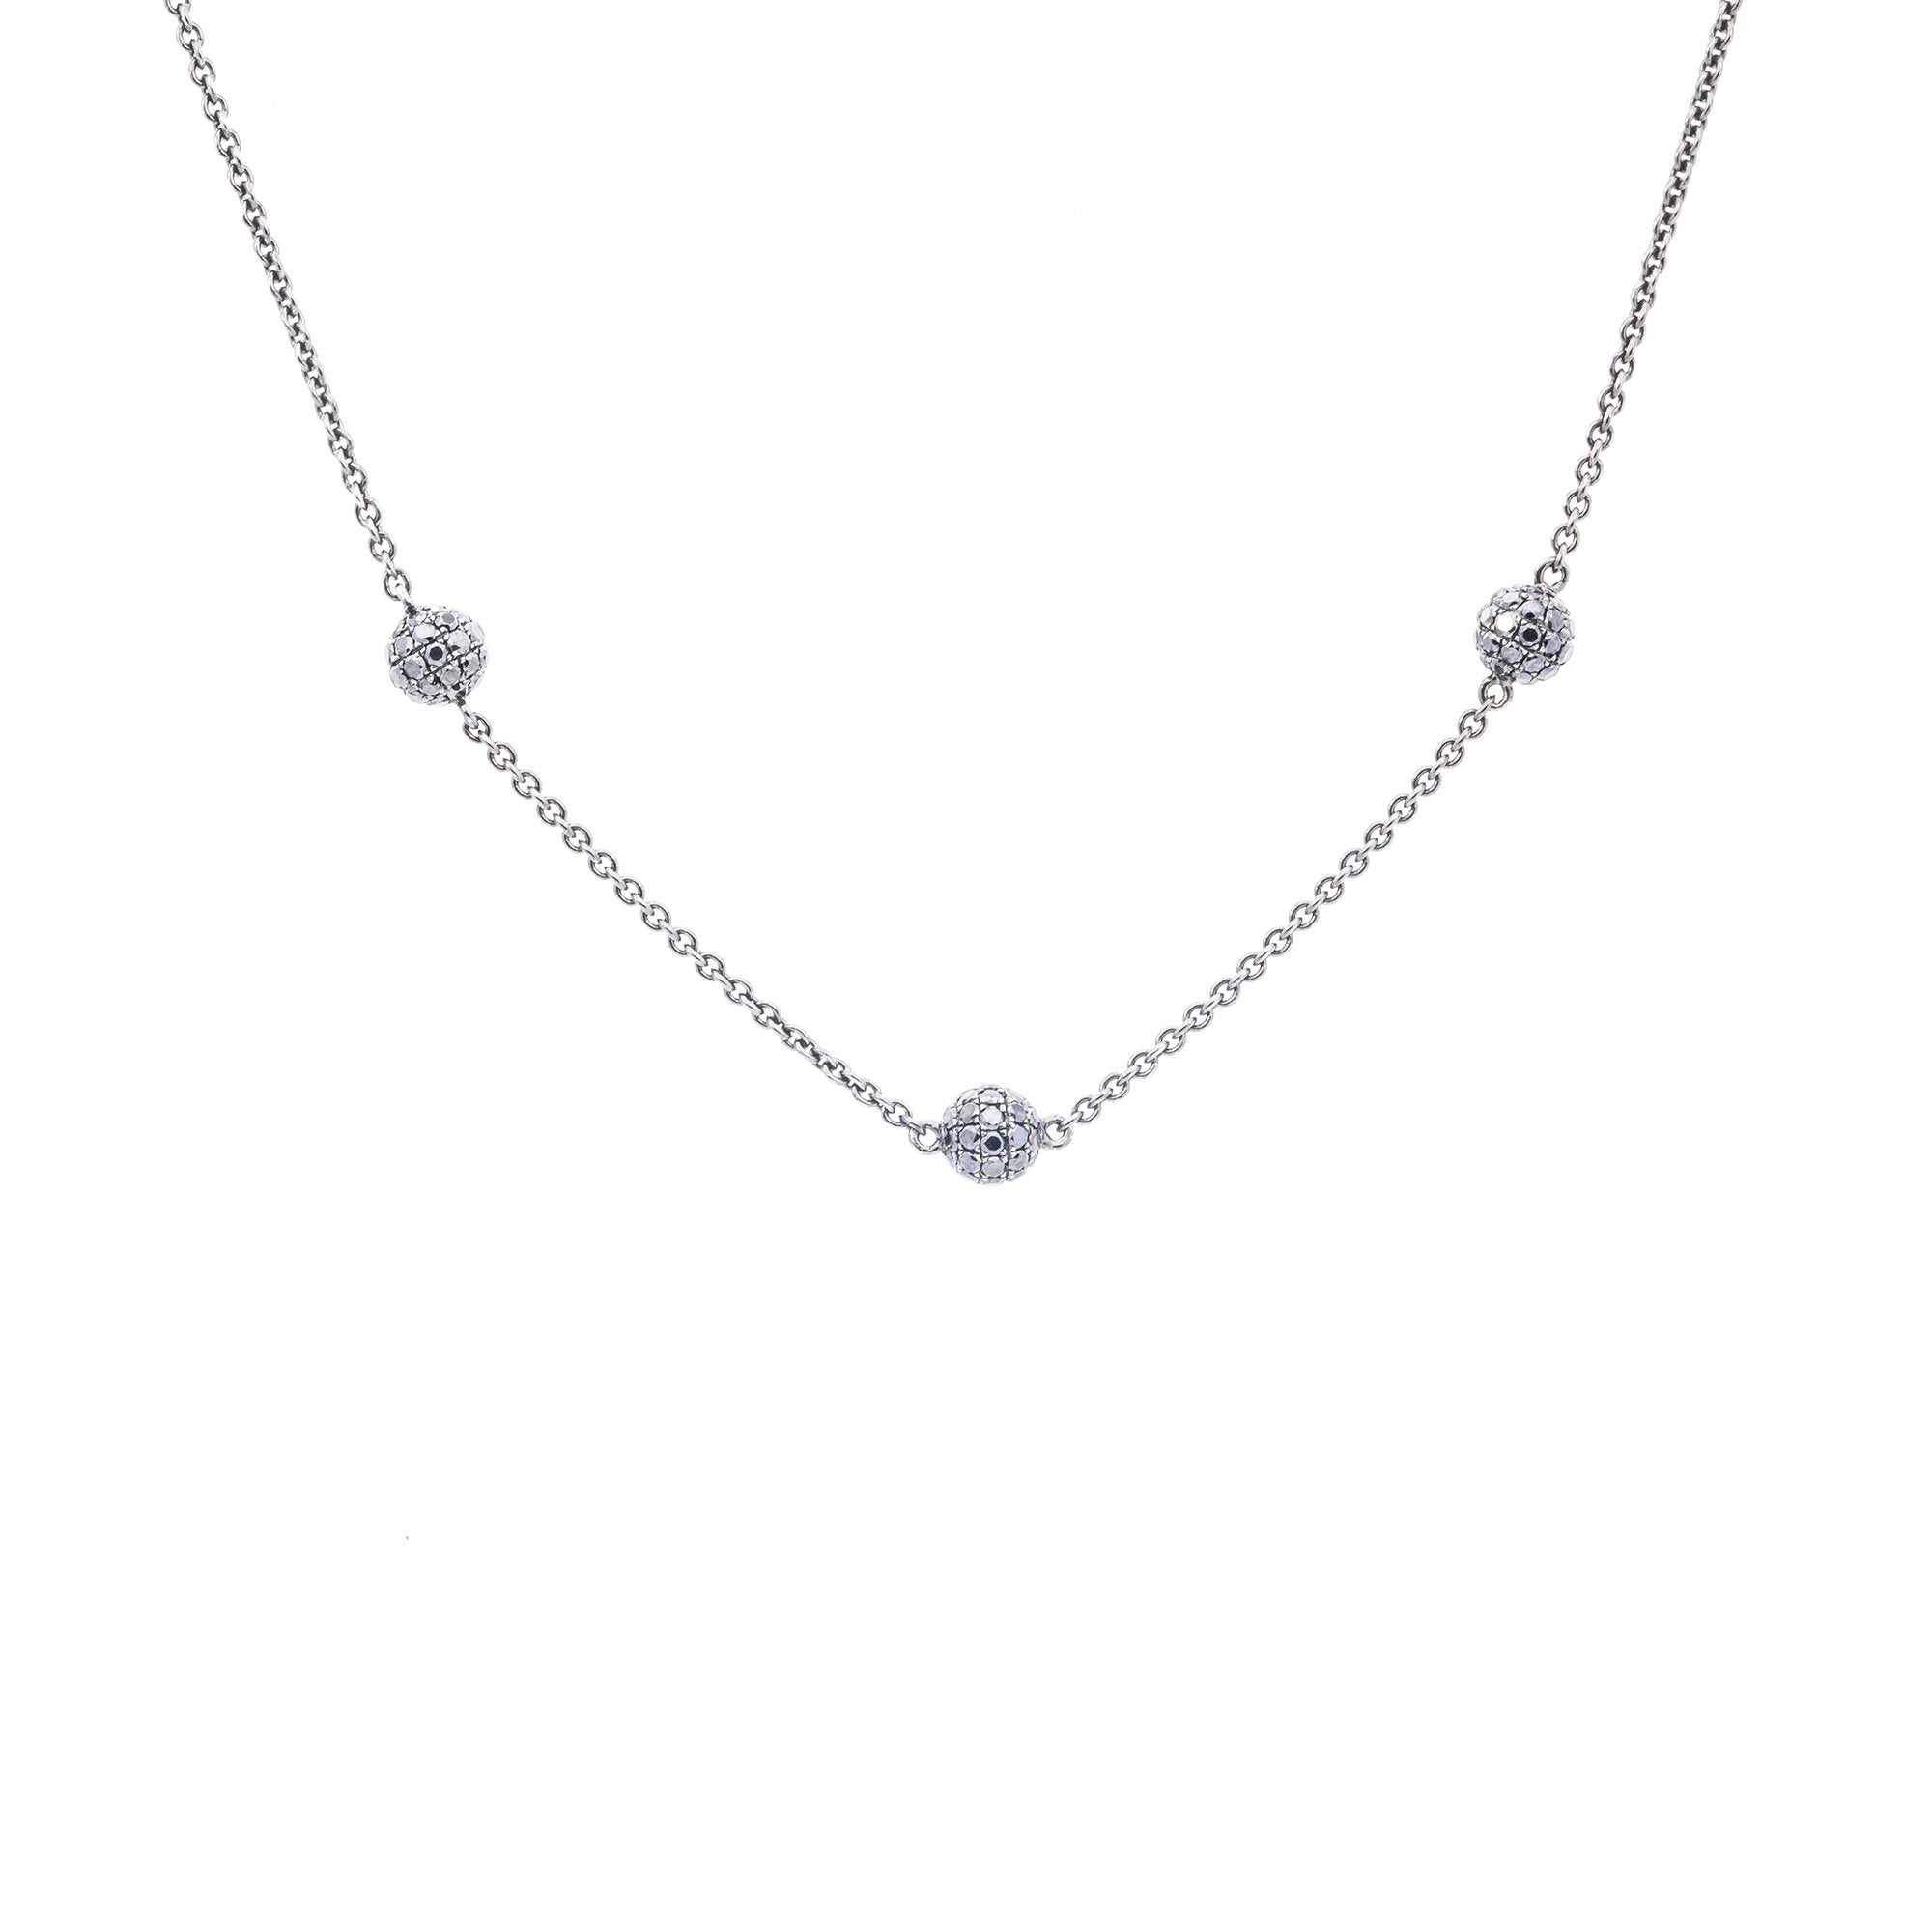 18K White Gold Diamond Necklace With Small Balls